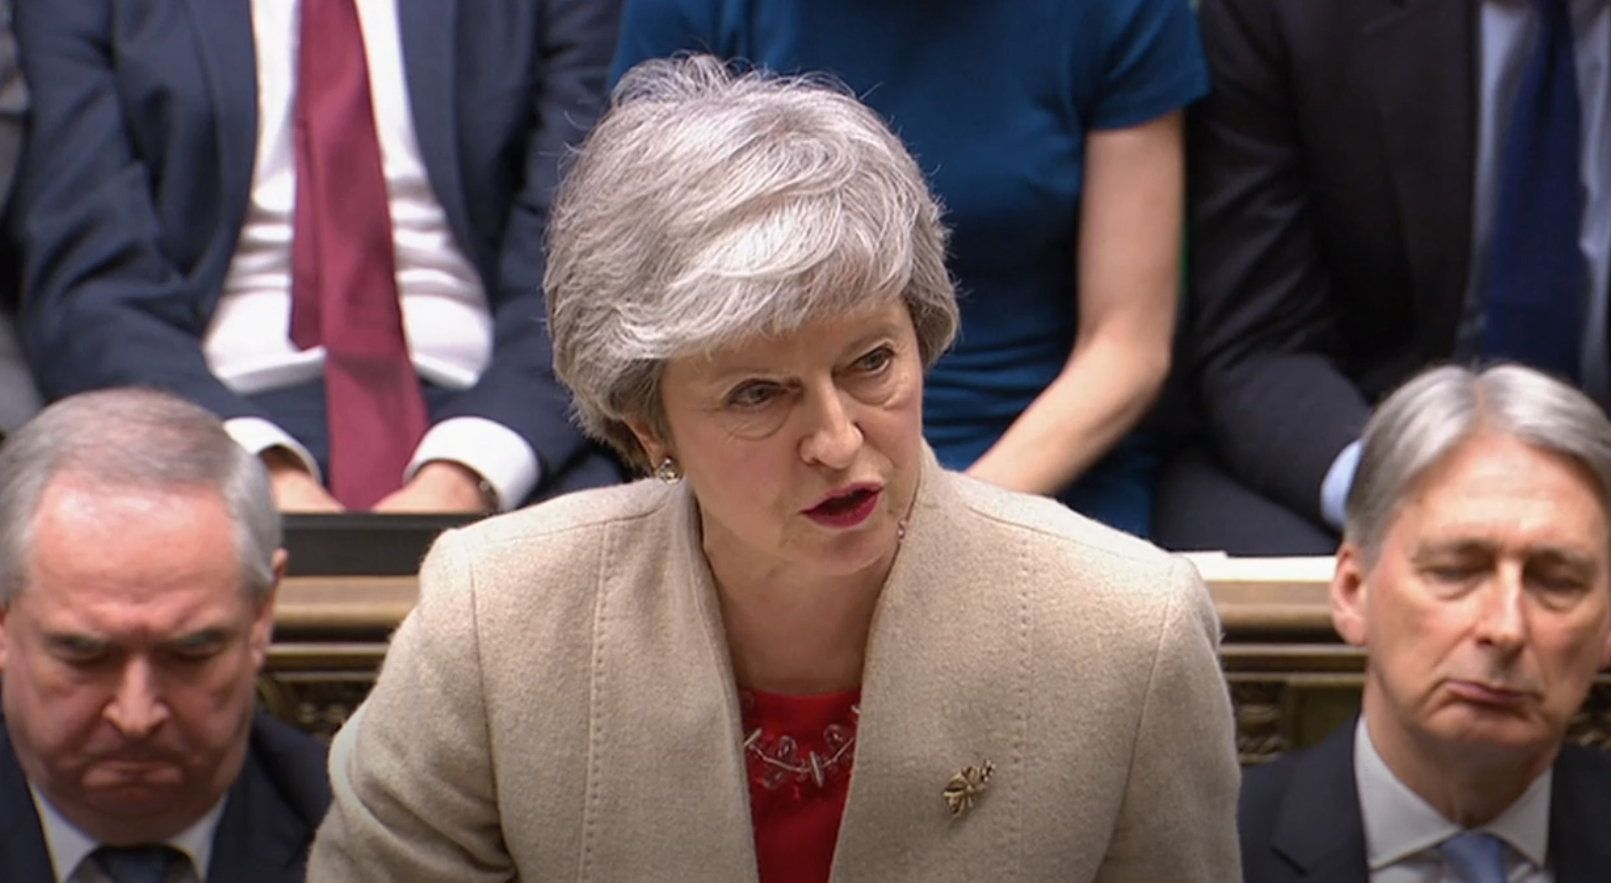 Prime Minister Theresa May speaks after the government's withdrawal agreement was voted down for the third time in the House of Commons.